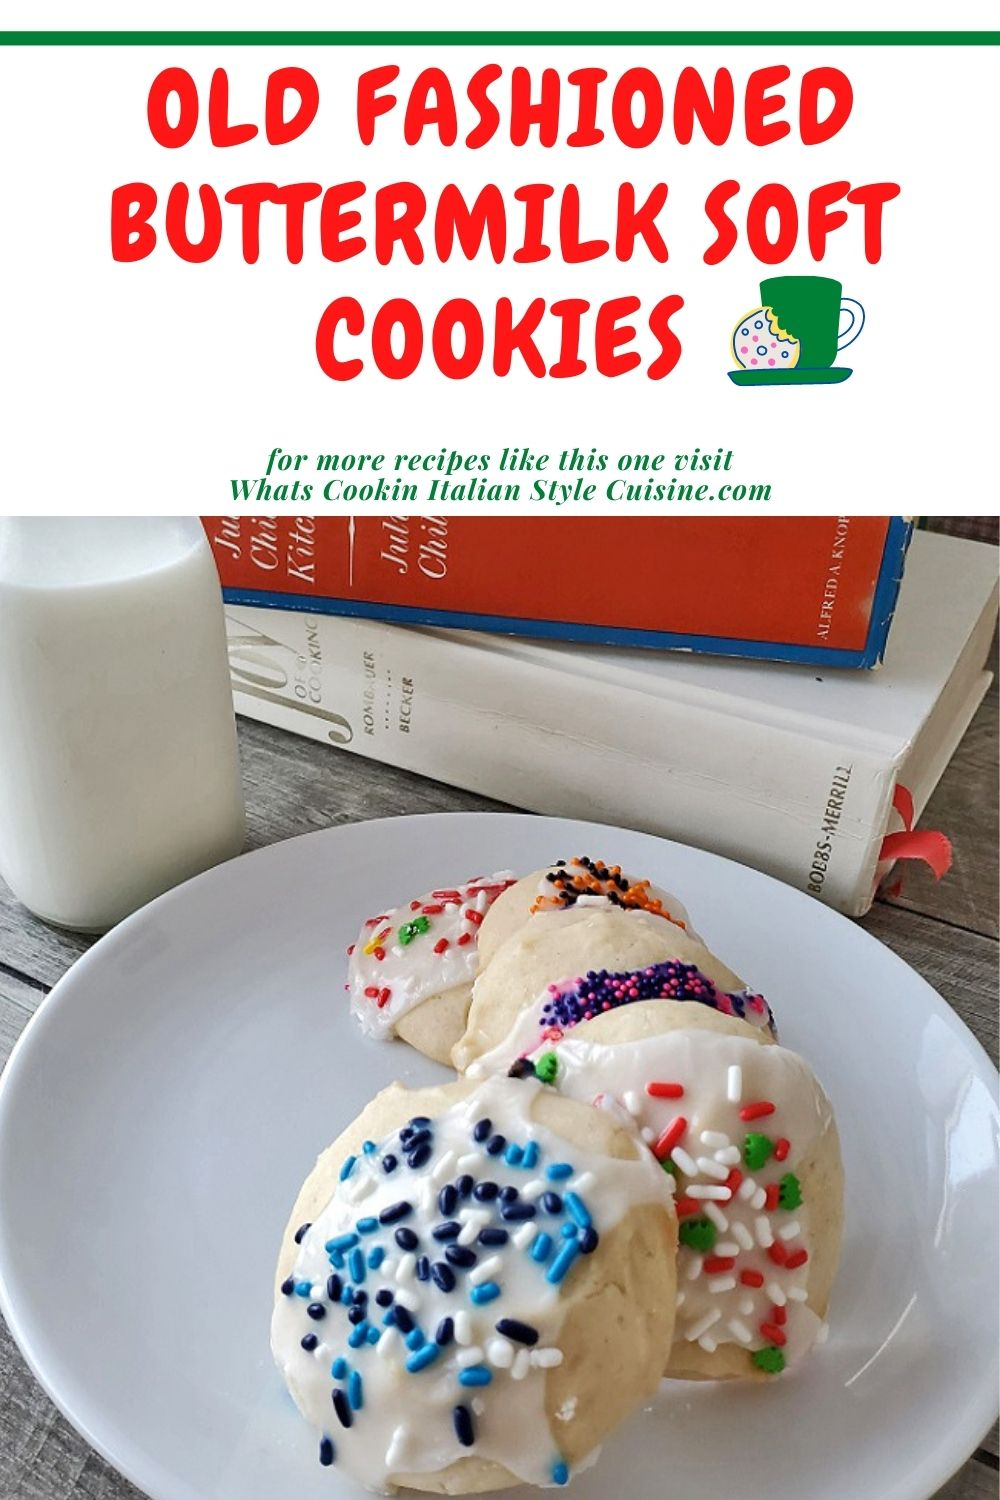 this is a pin for later on how to make old fashioned sugar cookie recipes